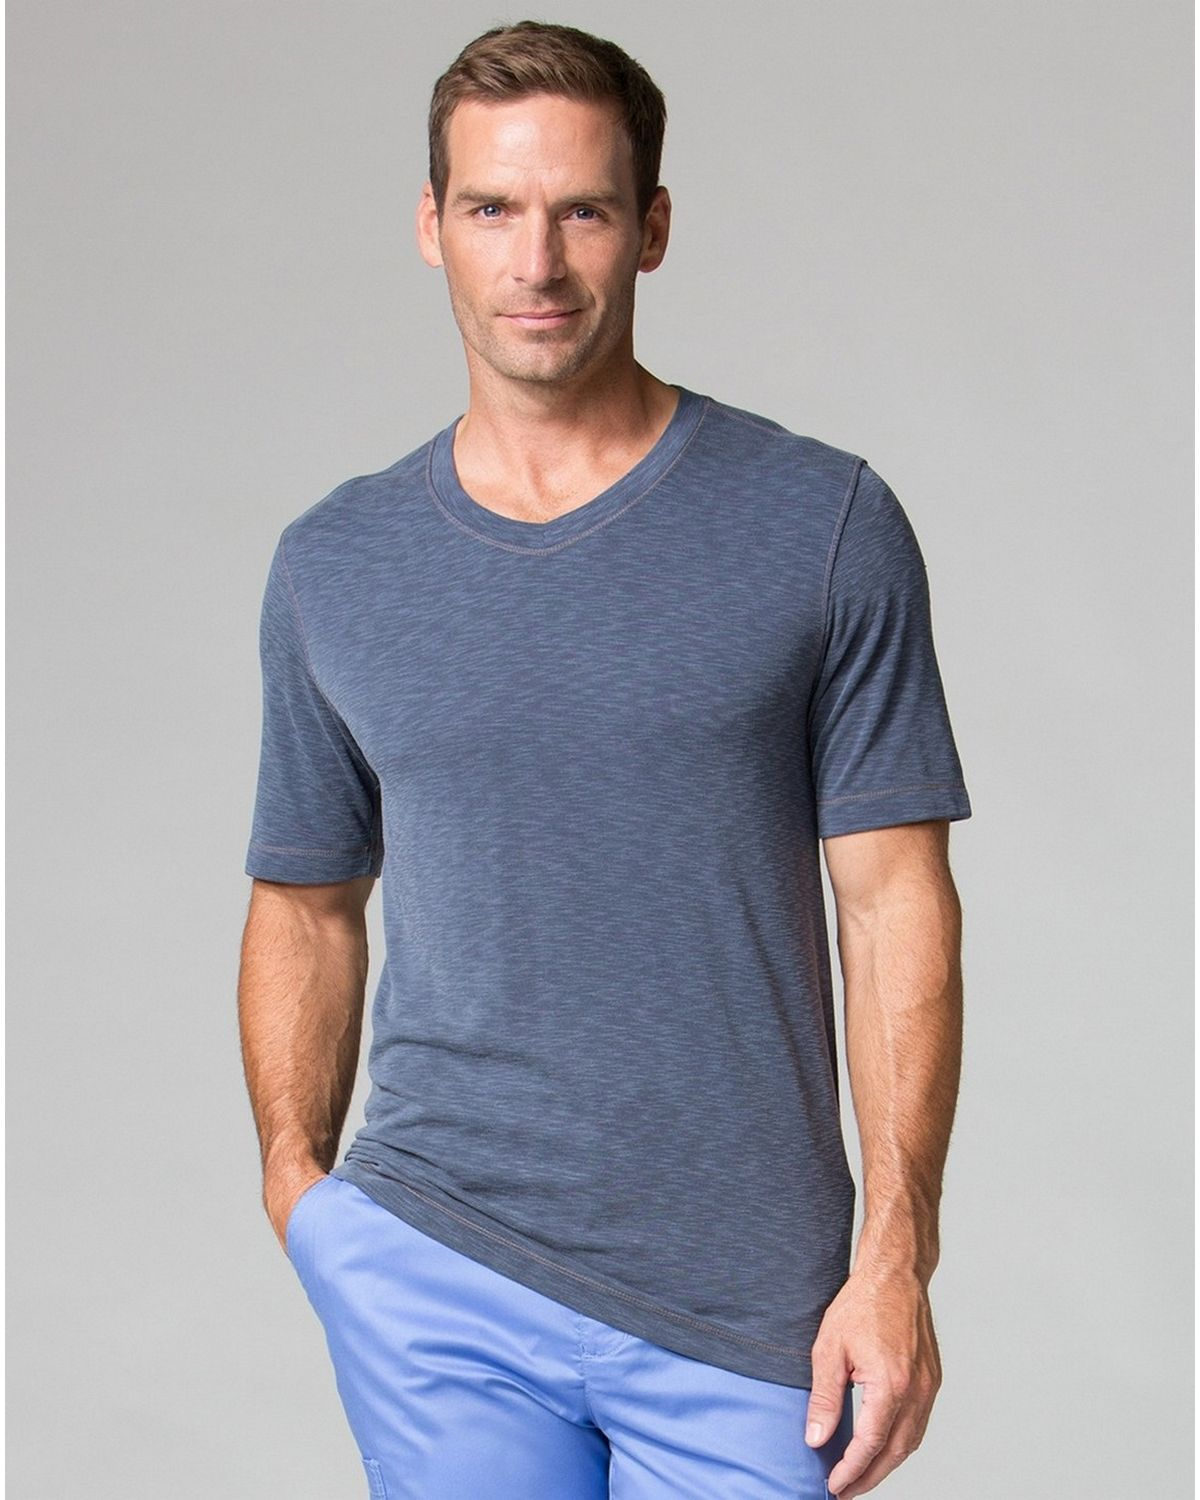 Maevn Modal 6409 Mens Short Sleeve Tee - Navy - XL 6409